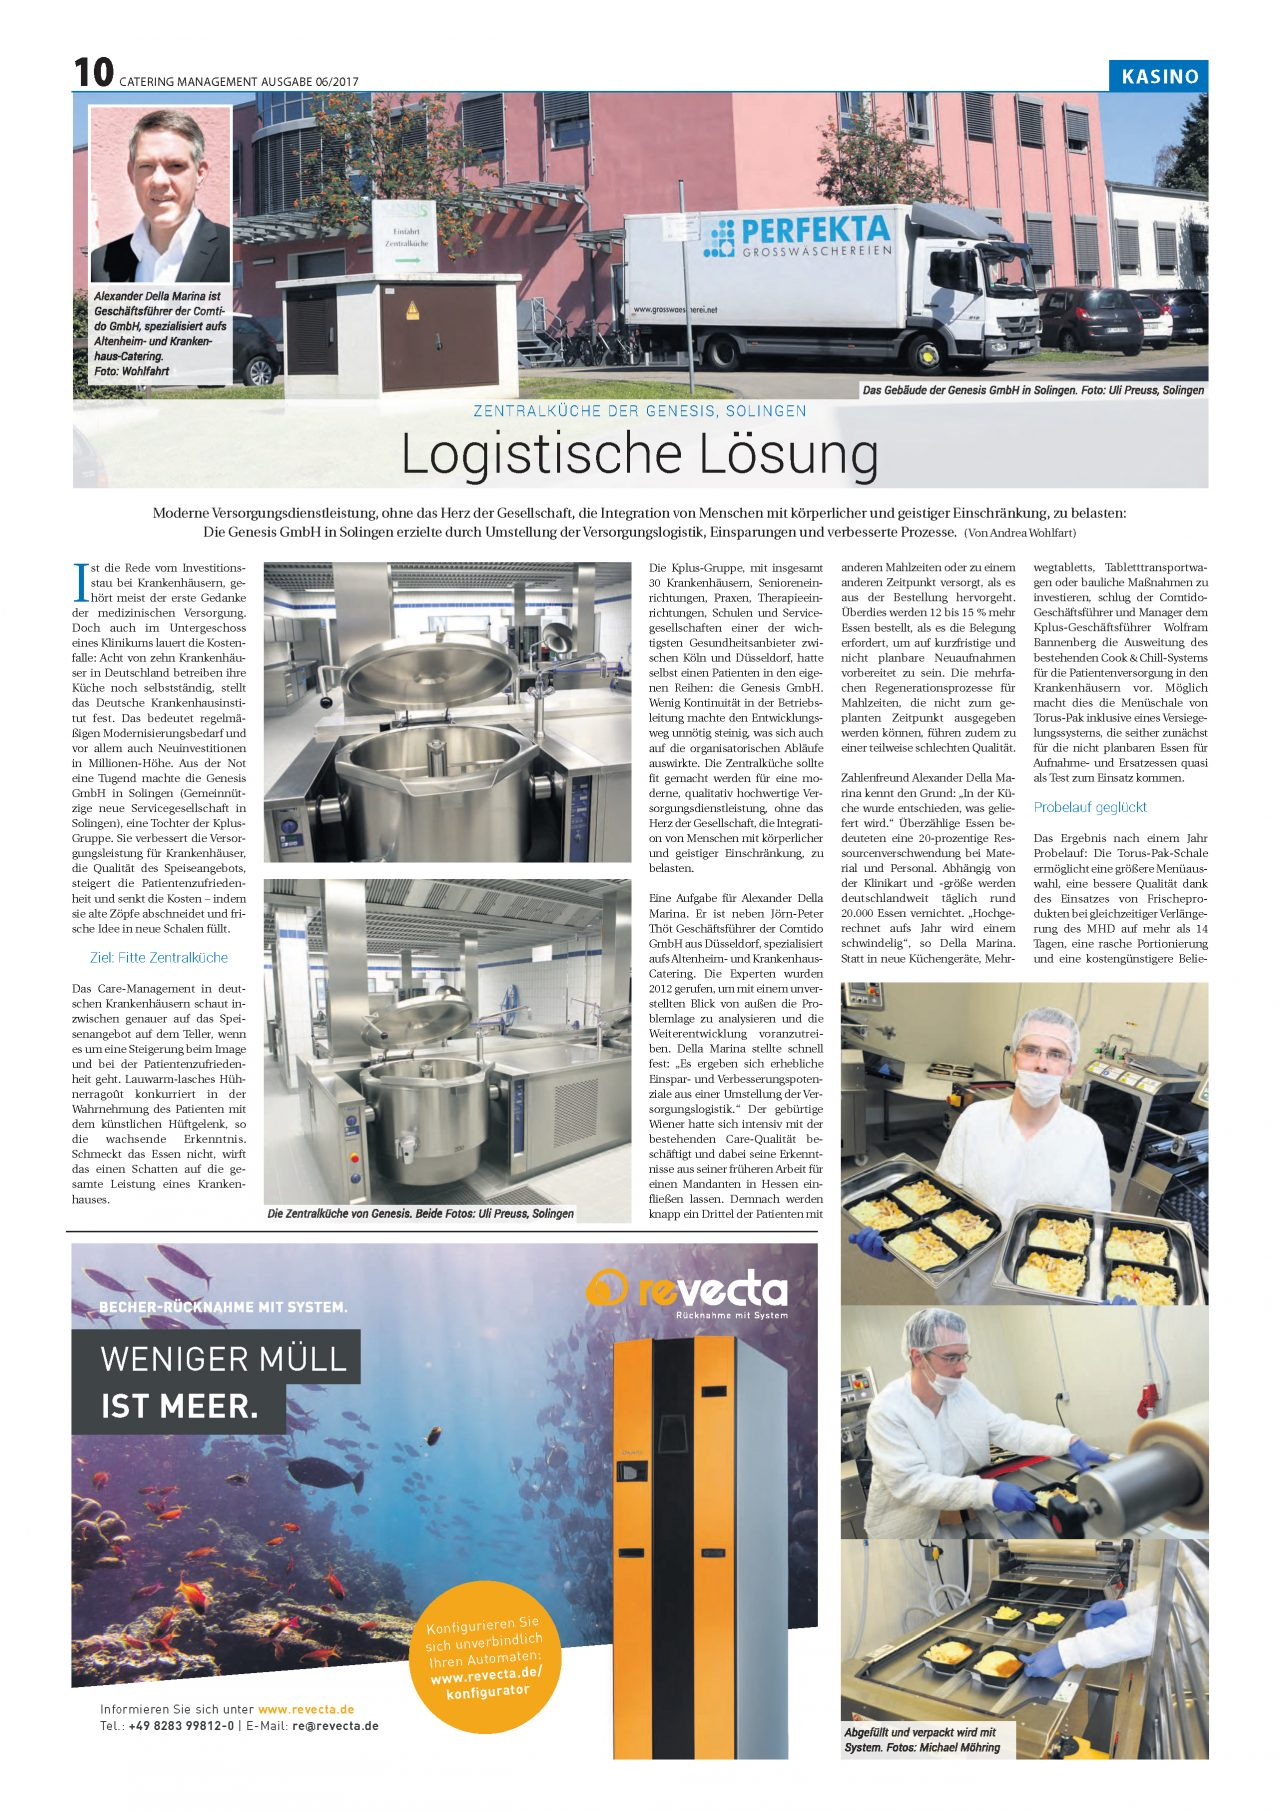 Central kitchen of GENESIS Solingen in the June 2017 edition